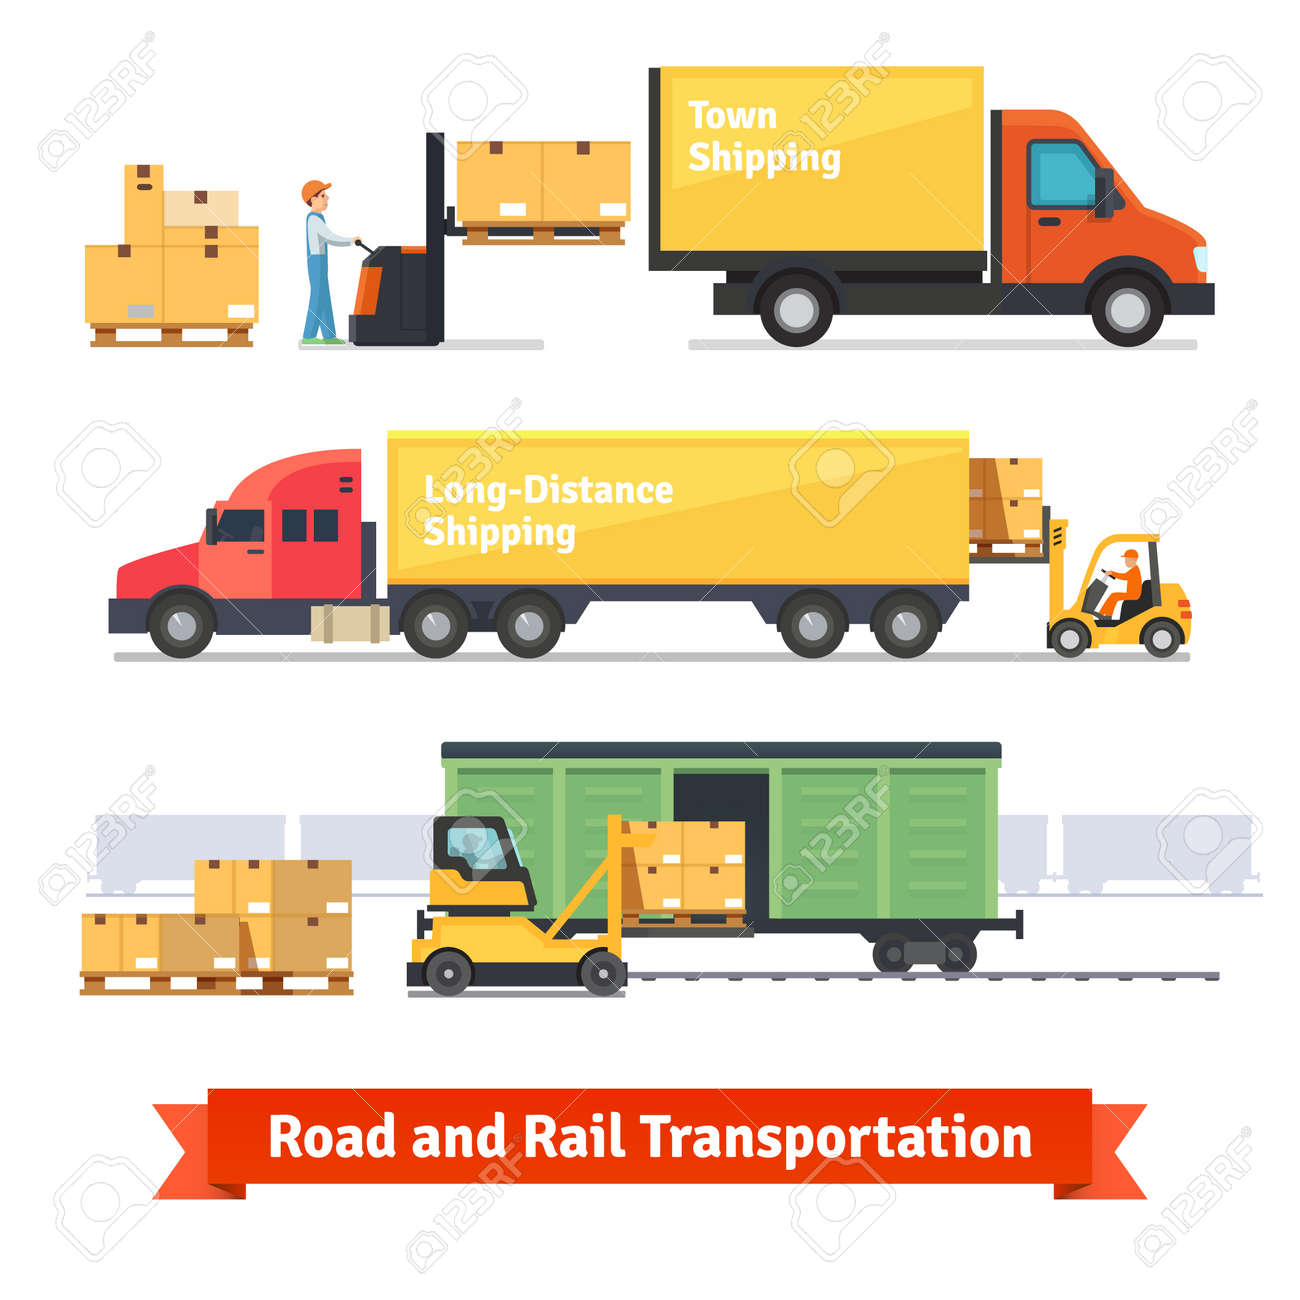 Cargo transportation by road and train. Workers loading and unloading trucks and rail car with forklifts. Flat style icons and illustration. - 48124392